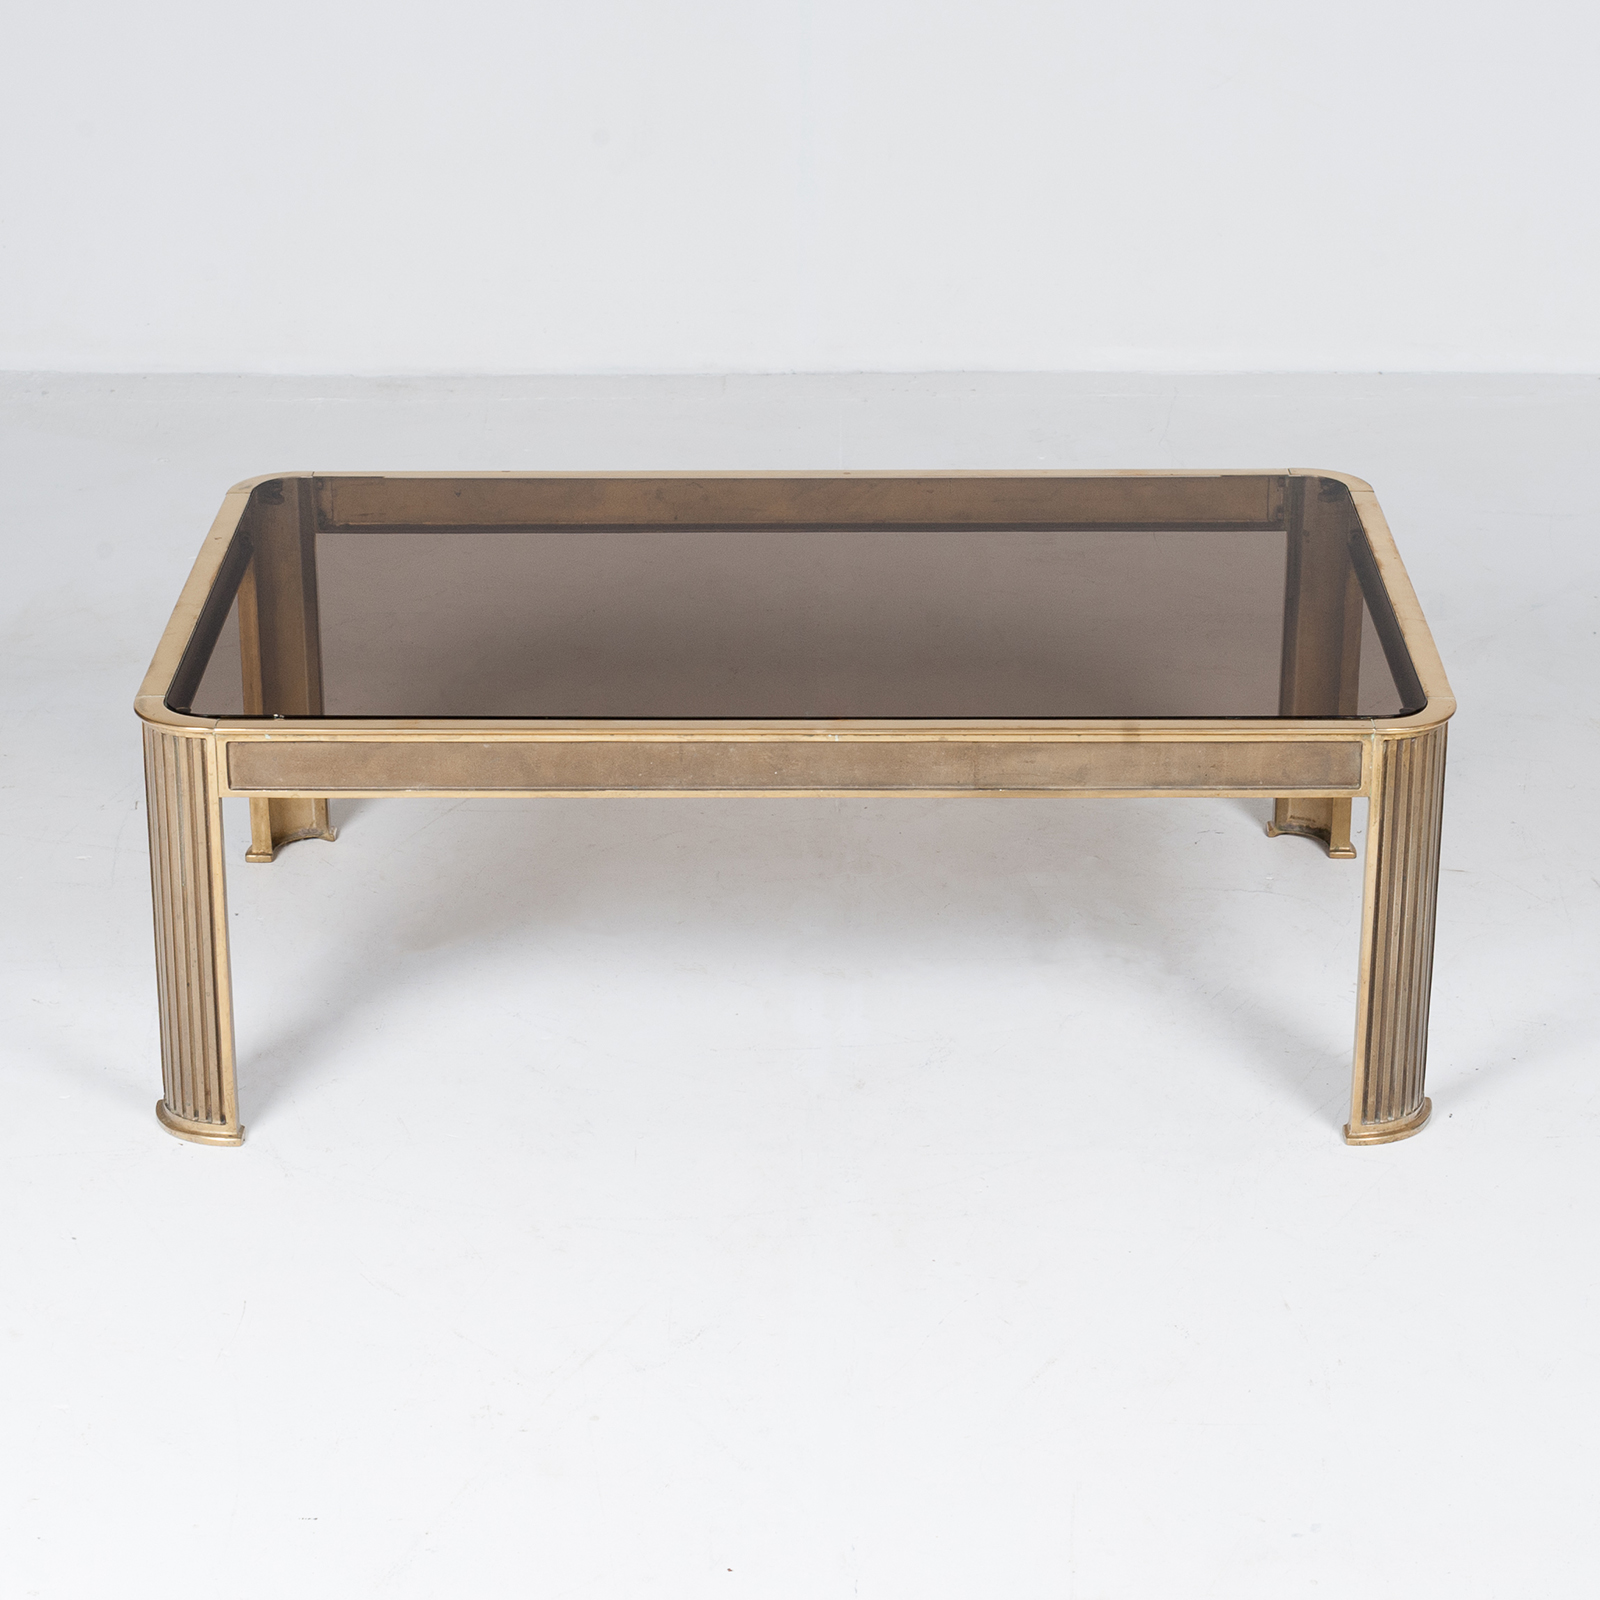 Rectangular Coffee Table With Solid Brass Frame By Peter Ghyczy, 1970s, The Netherlands 4